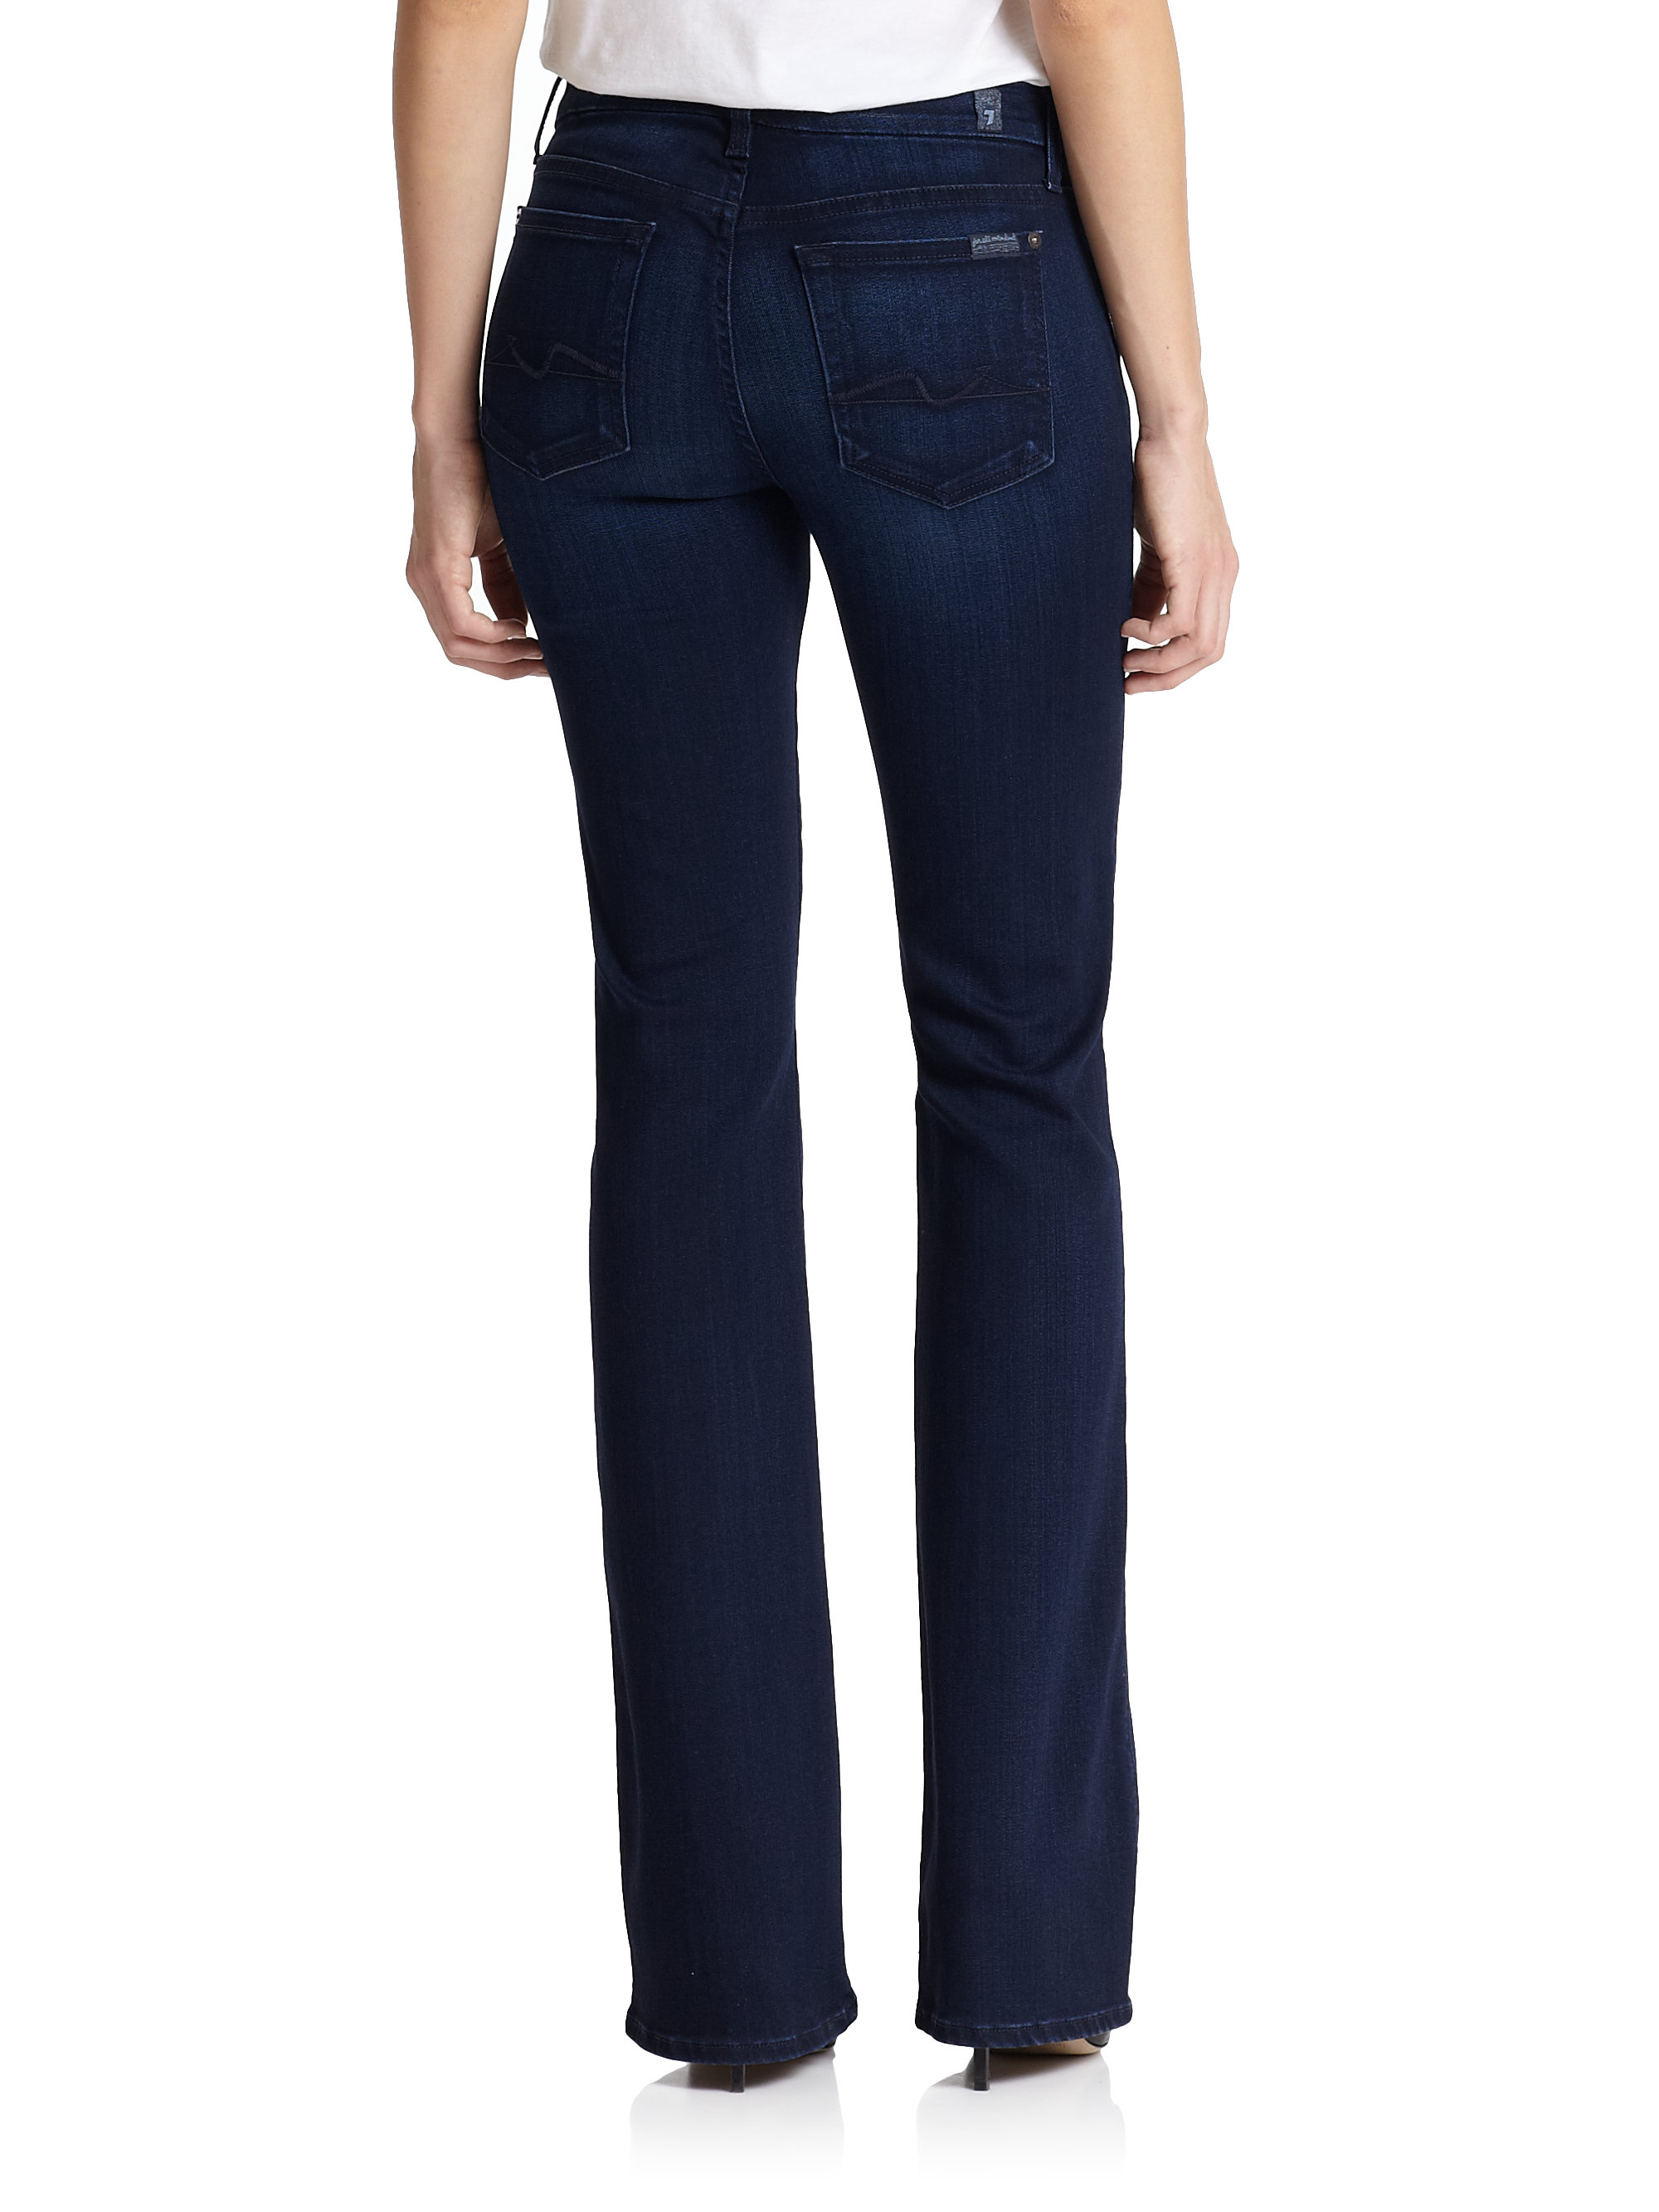 lyst 7 for all mankind kimmie bootcut jeans in blue. Black Bedroom Furniture Sets. Home Design Ideas